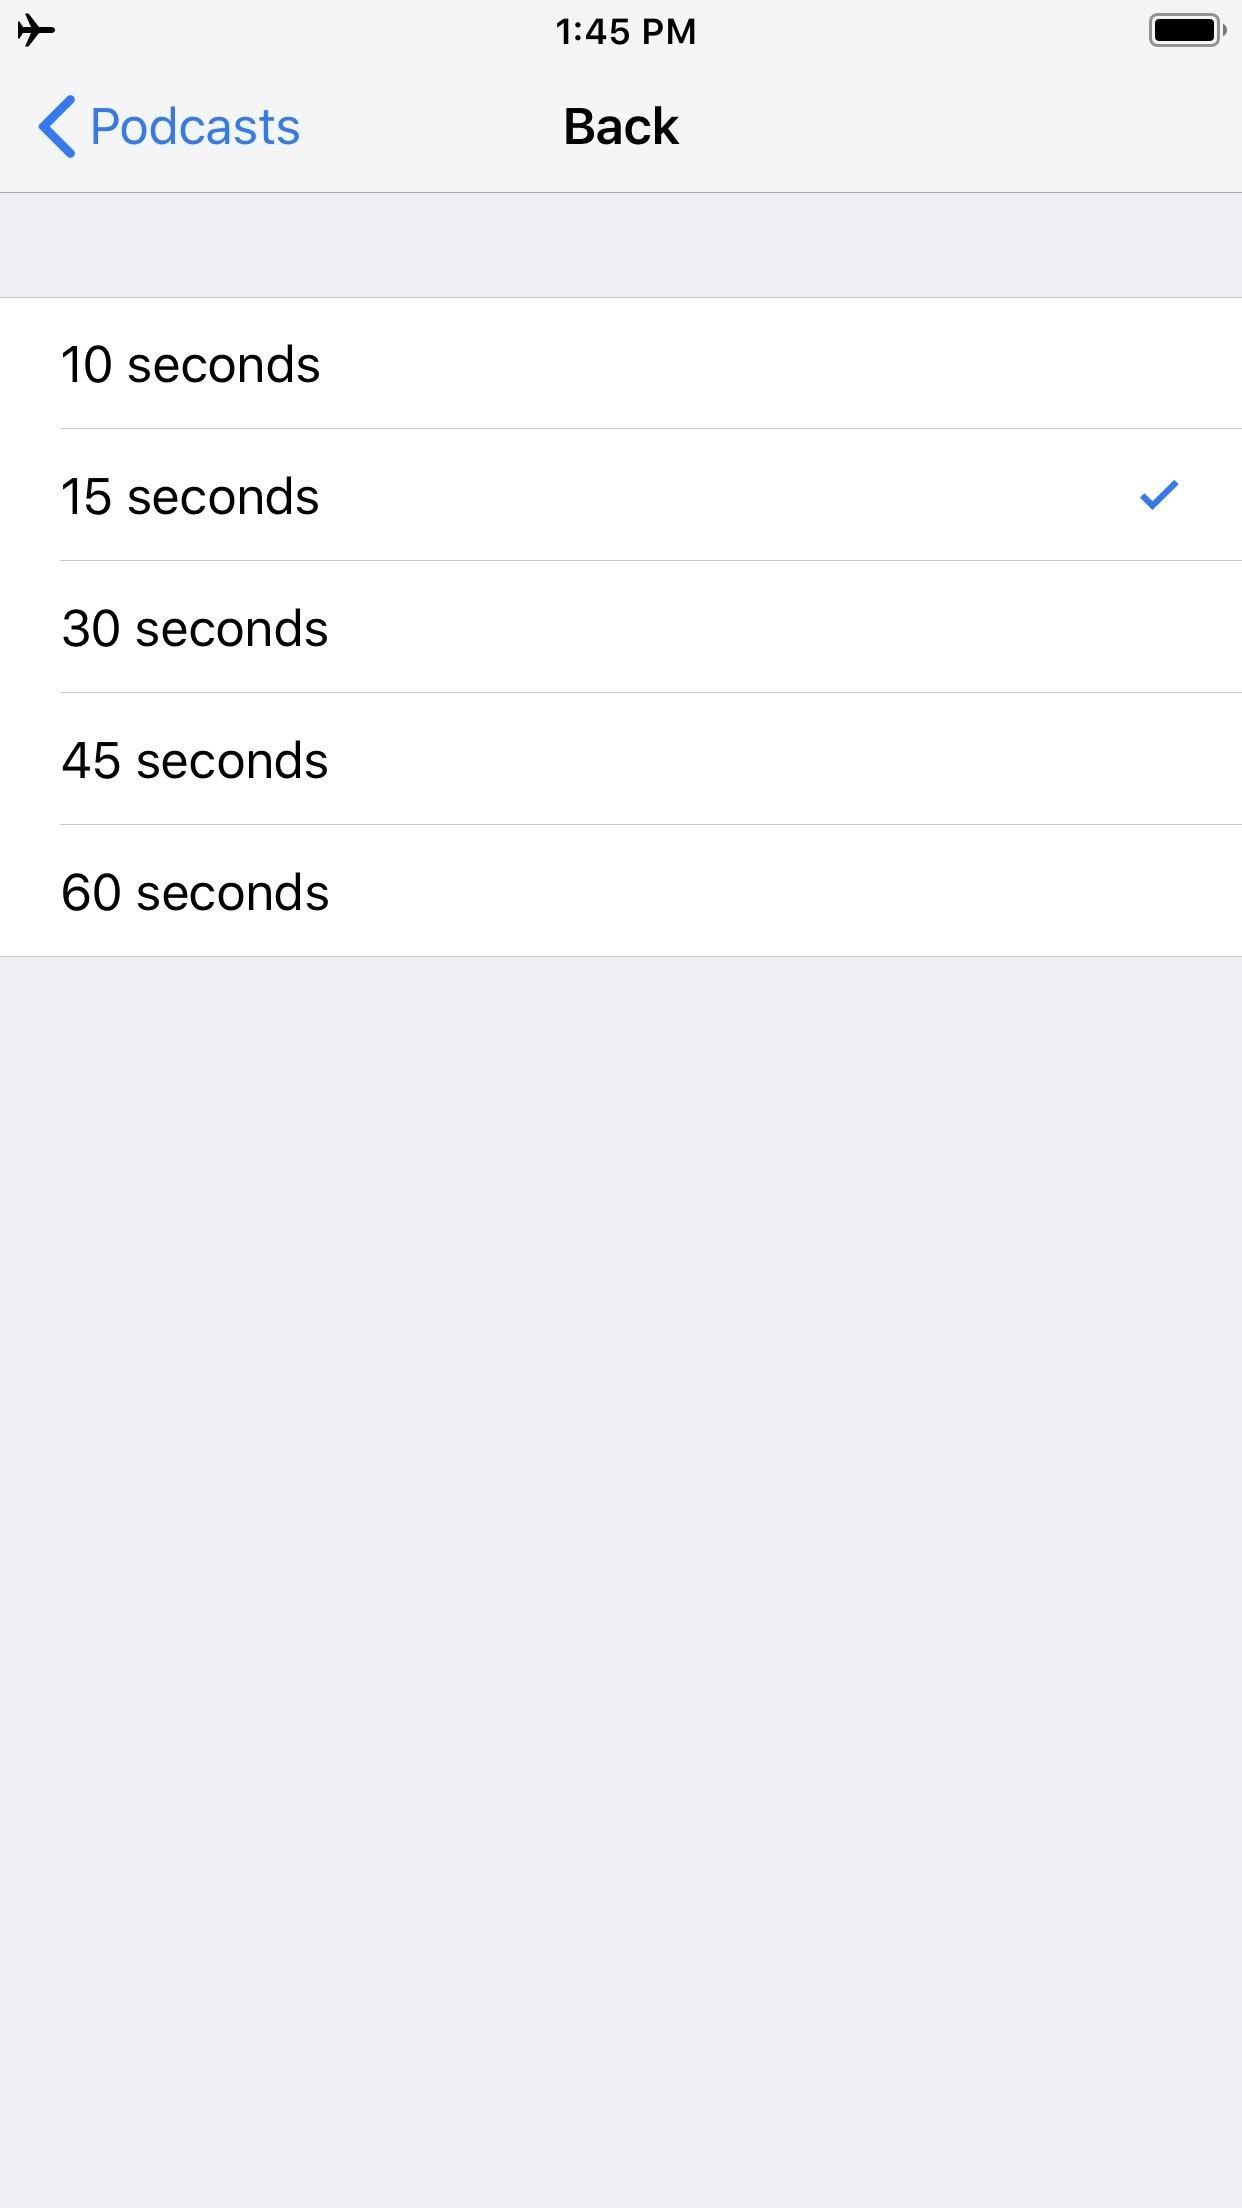 How to Customize Skip Length in Your iPhone's Podcasts App